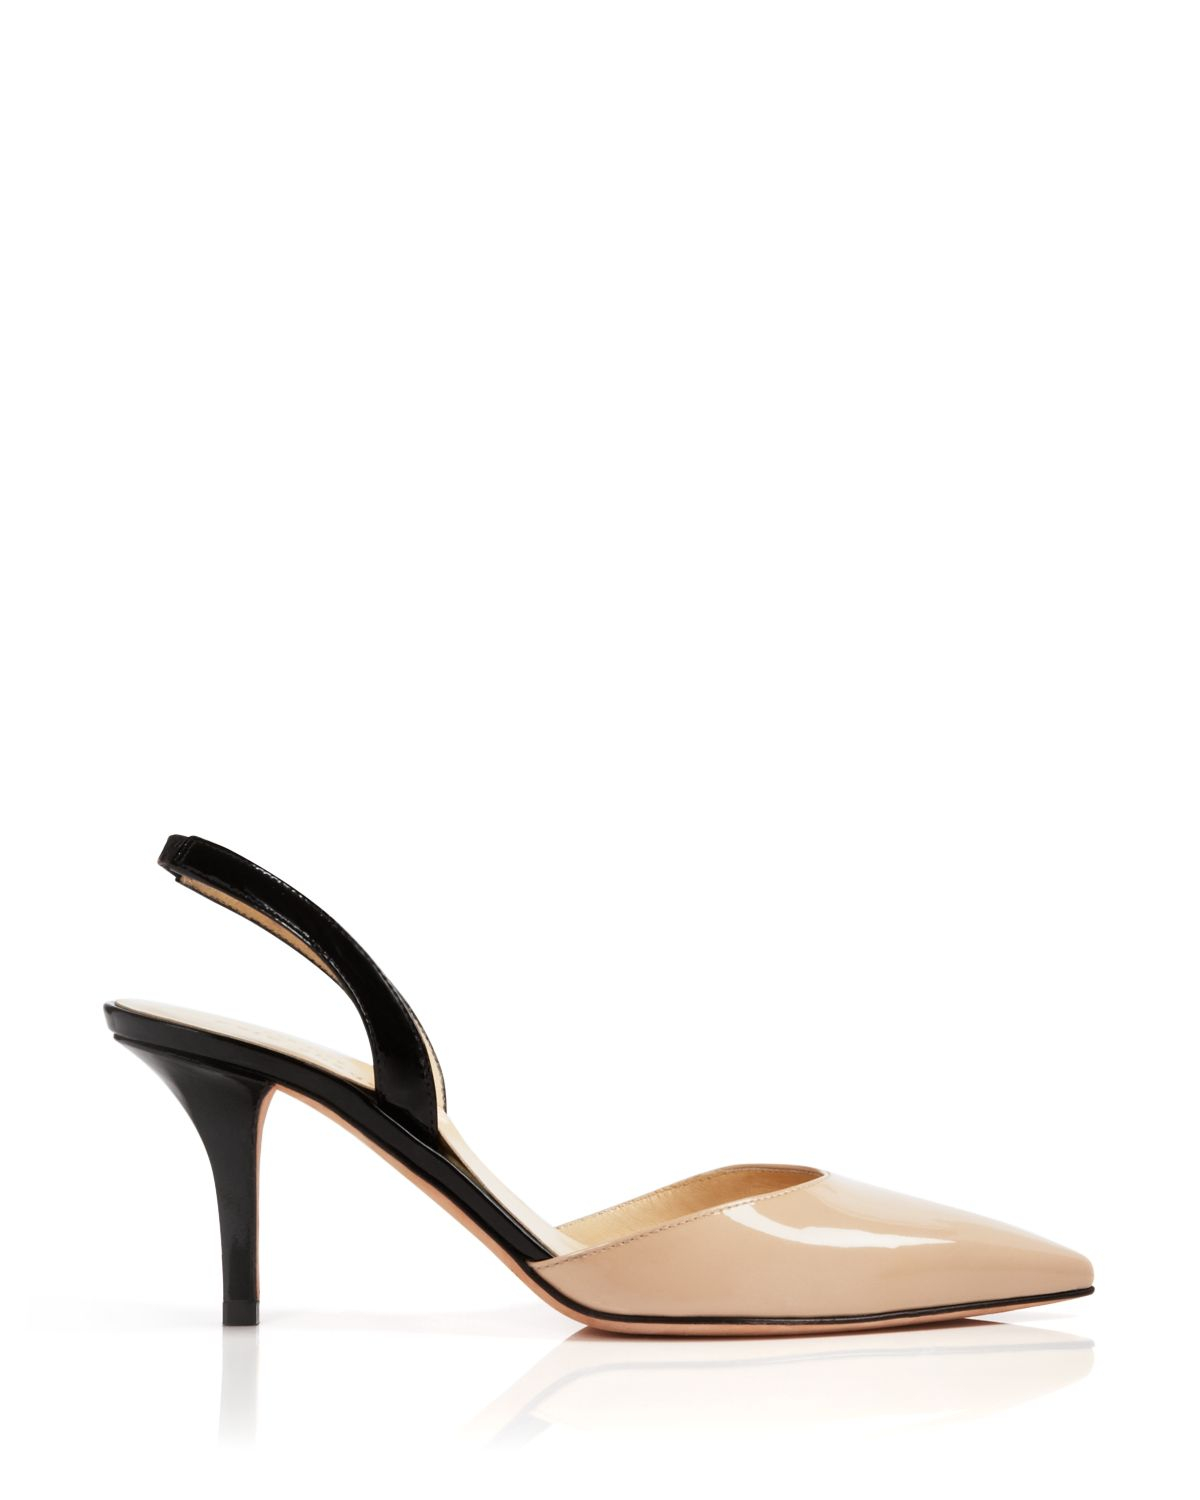 418498db0 Kate Spade Pointed Toe Slingback Pumps - Jeanette Colorblock Mid ...